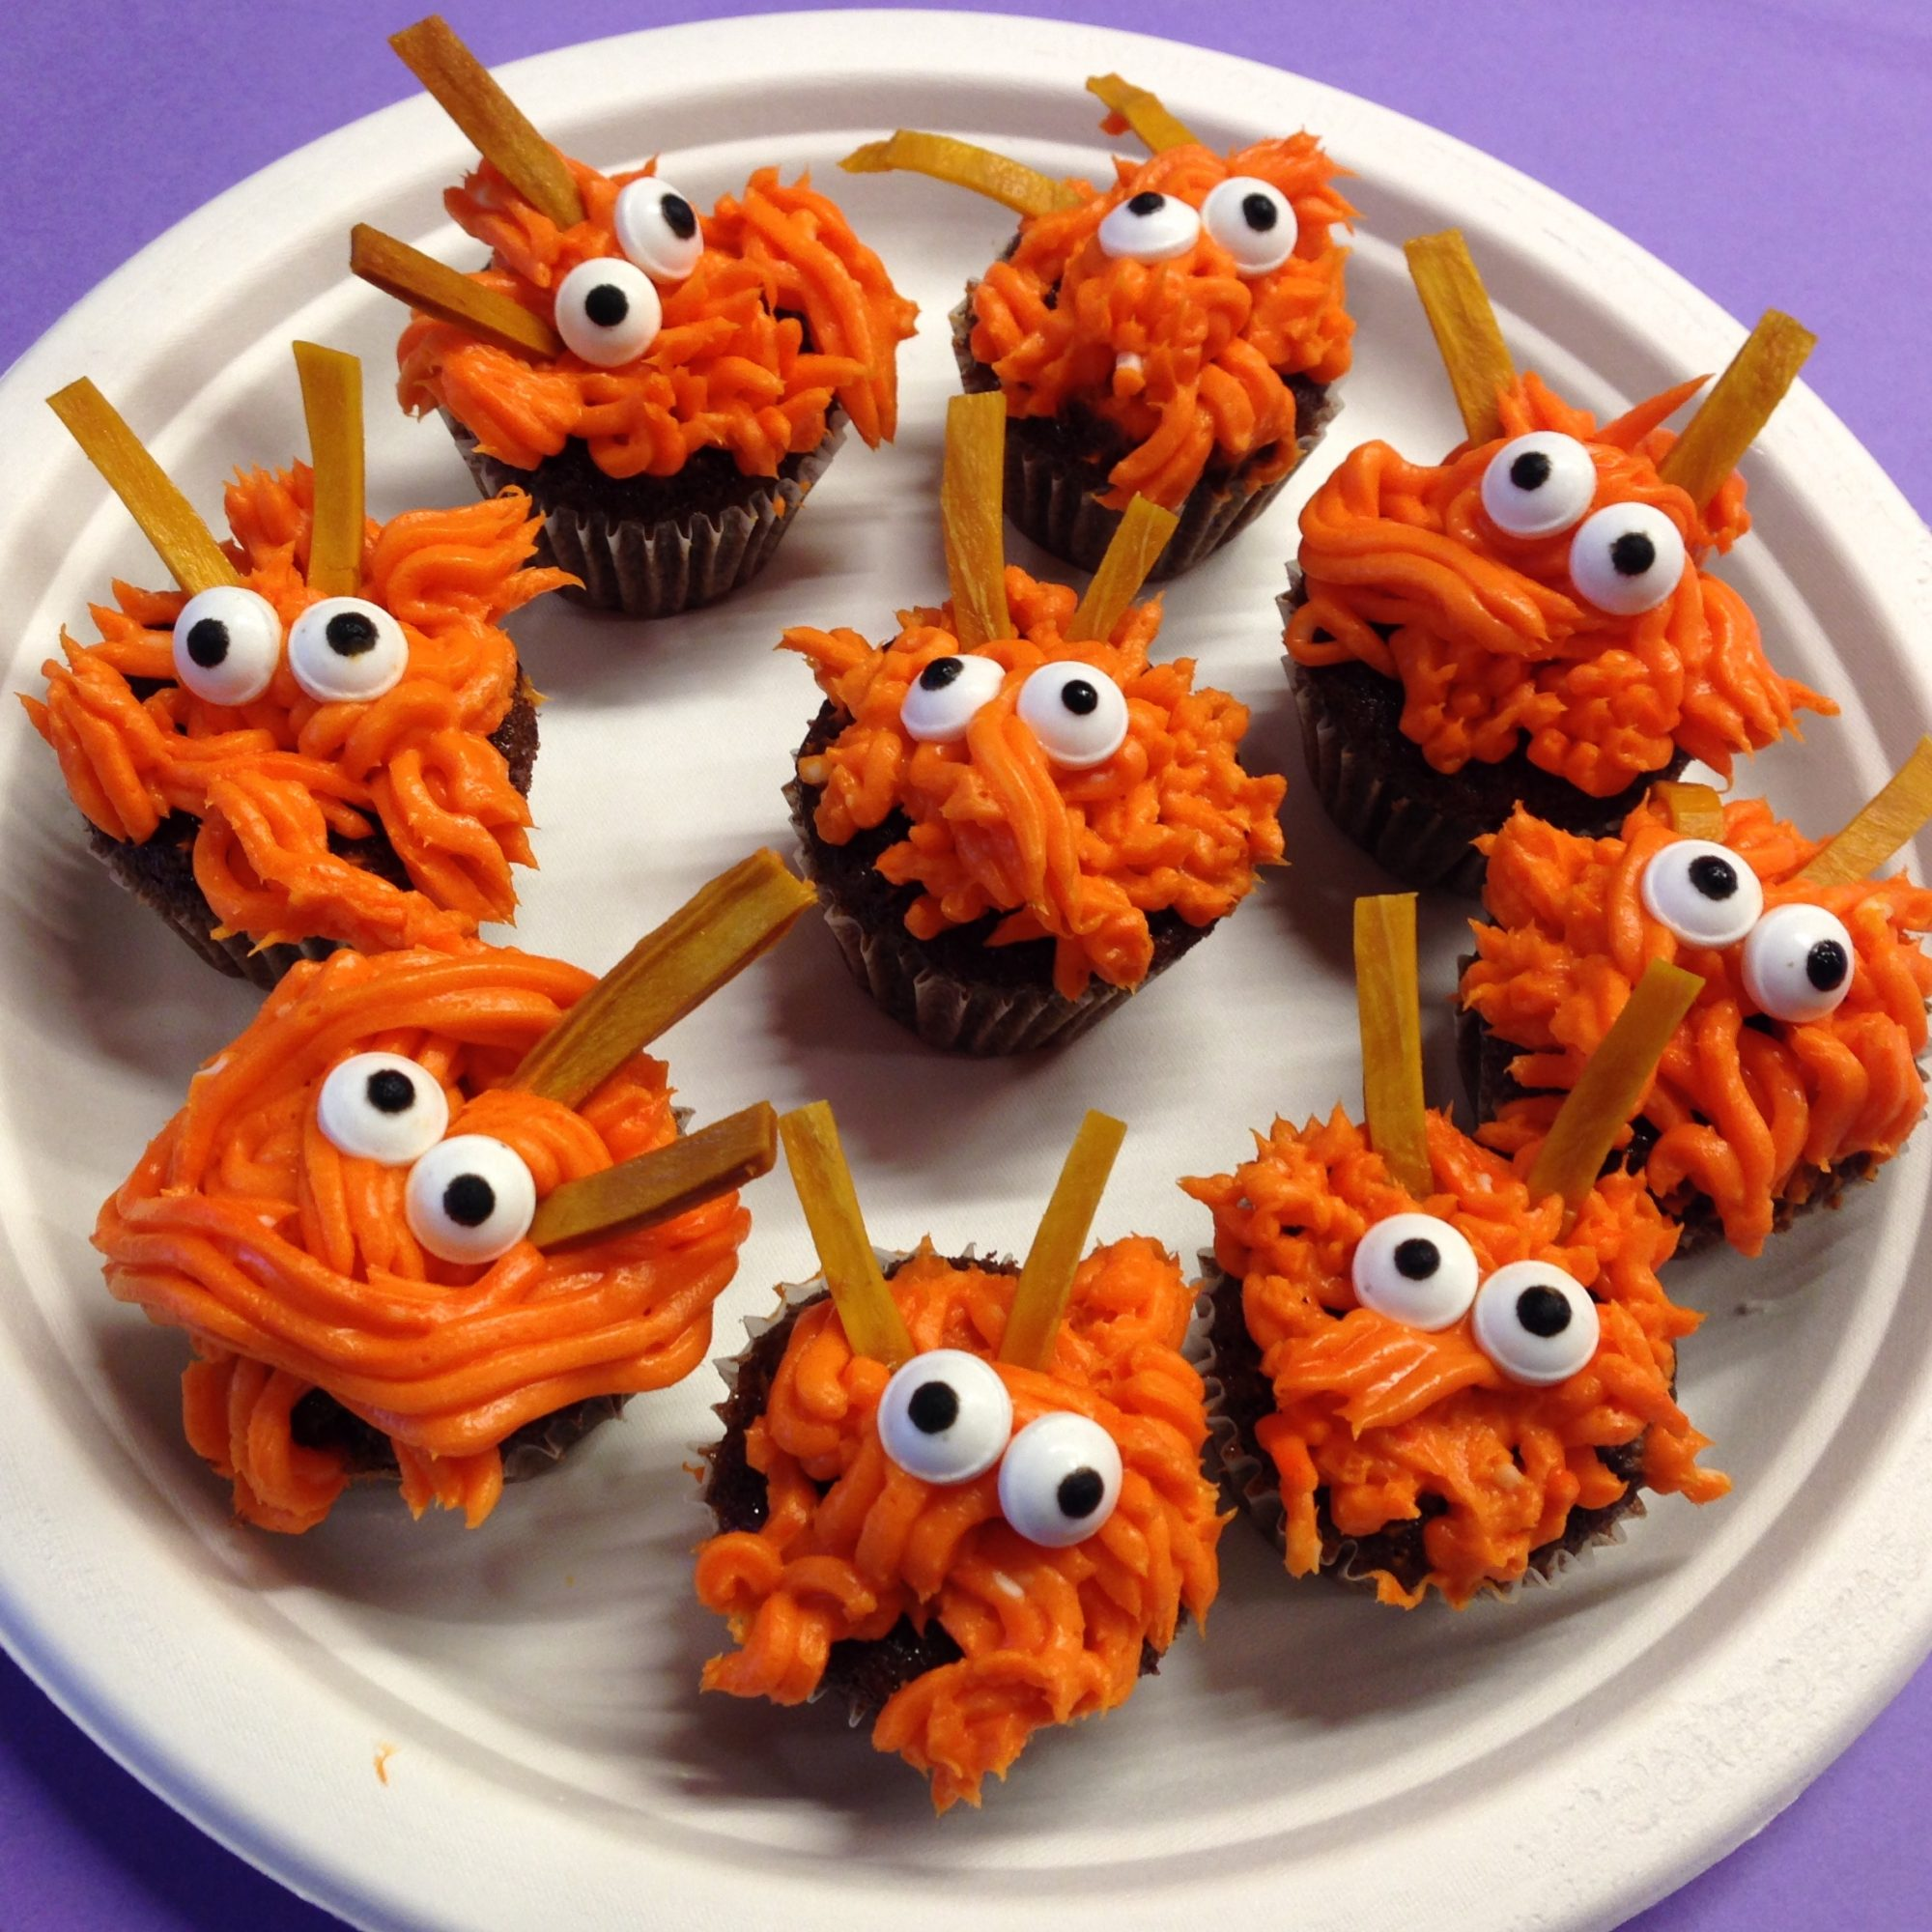 orange frosted cupcakes with monster faces